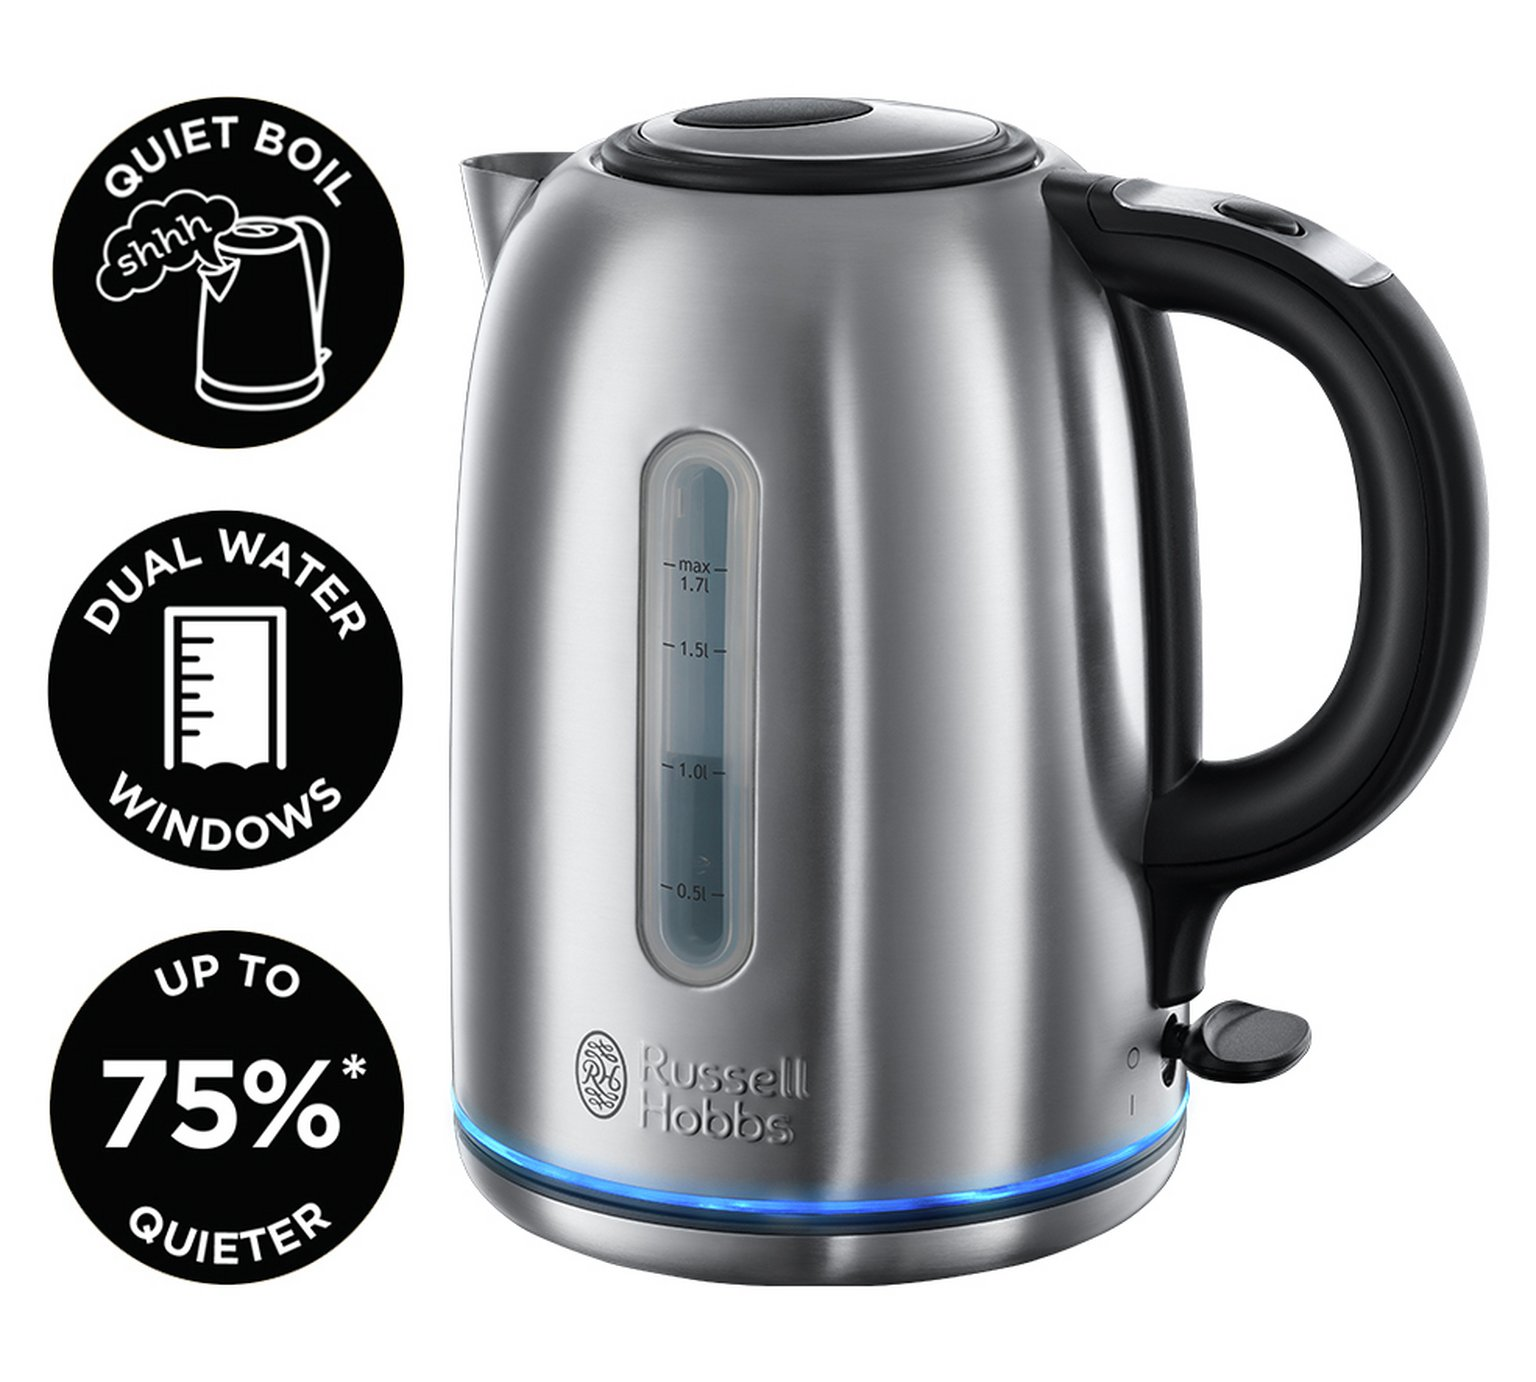 russell hobbs 20460 buckingham kettle stainless steel around the clock offers. Black Bedroom Furniture Sets. Home Design Ideas